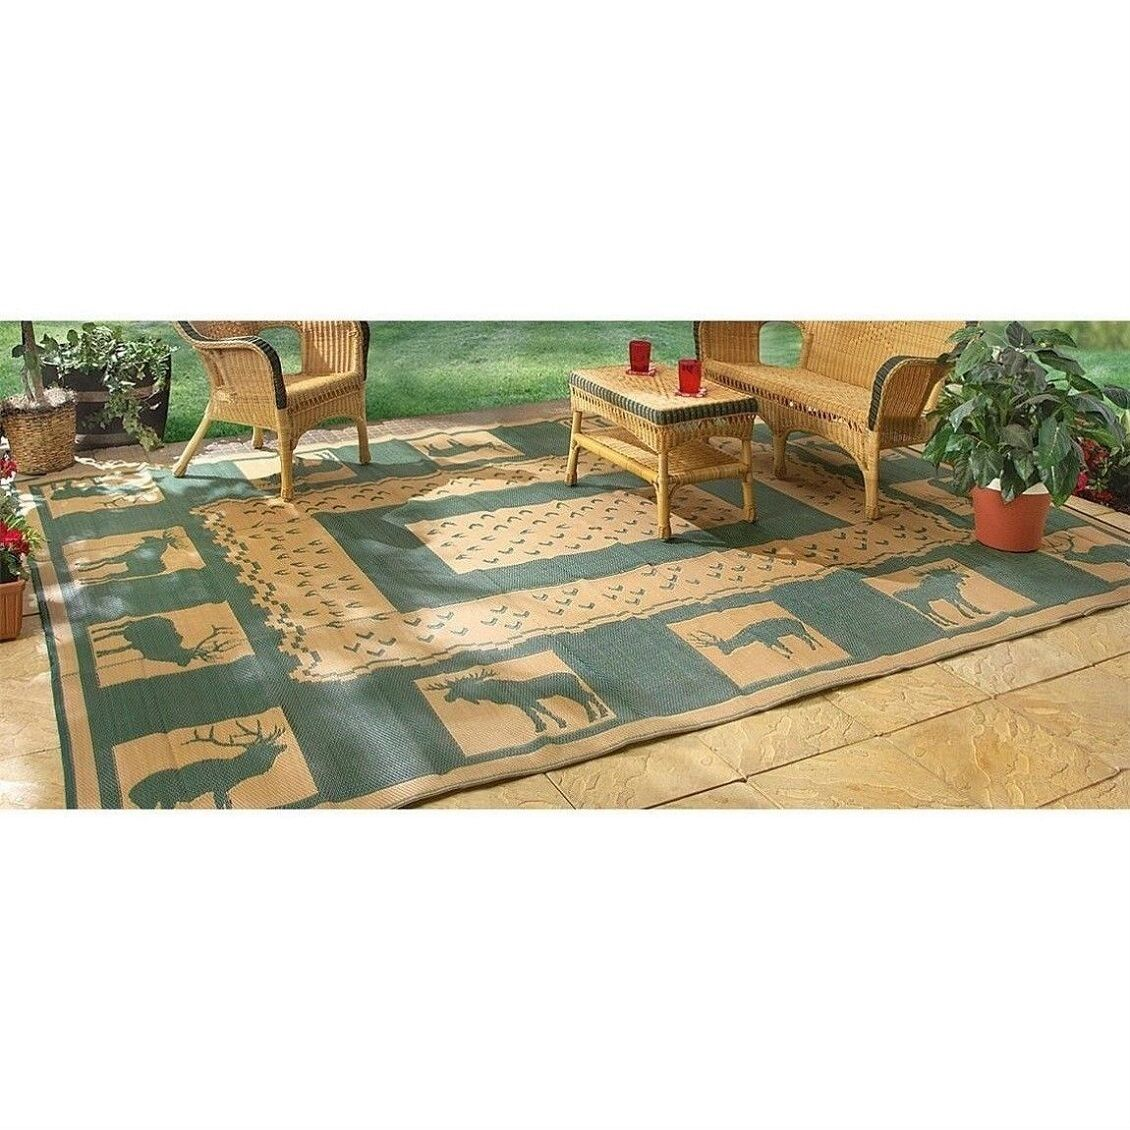 outdoor decks for rugs patio ideas website new my elegant home rug and